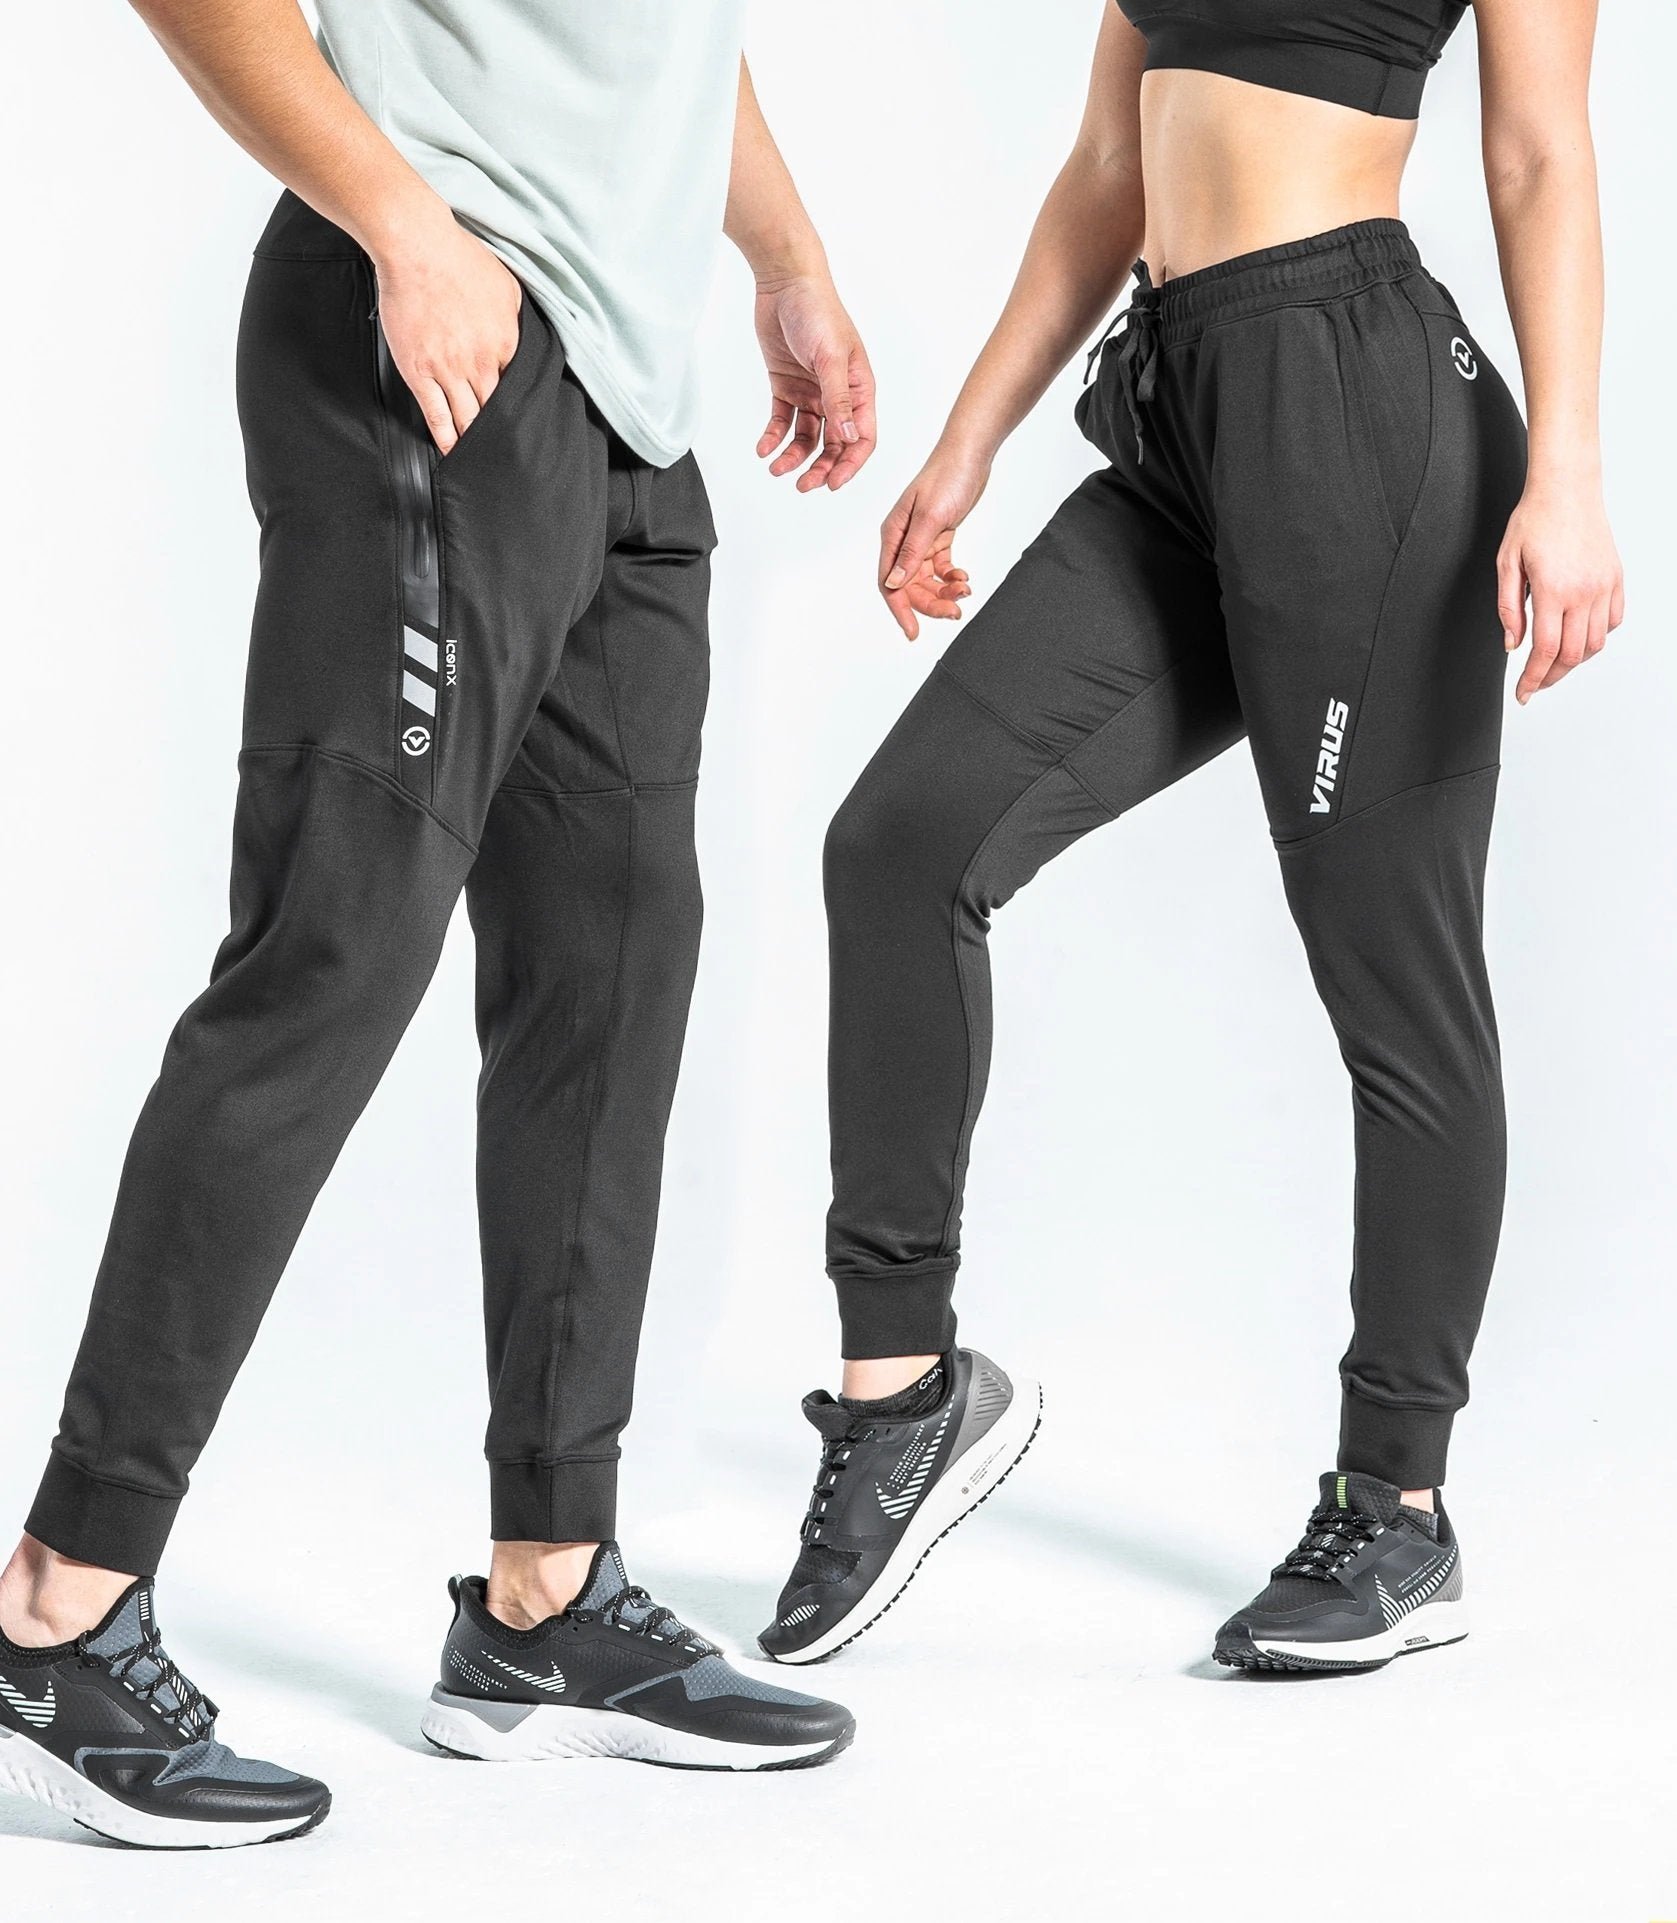 IconX BioCeramic™ Performance Pants